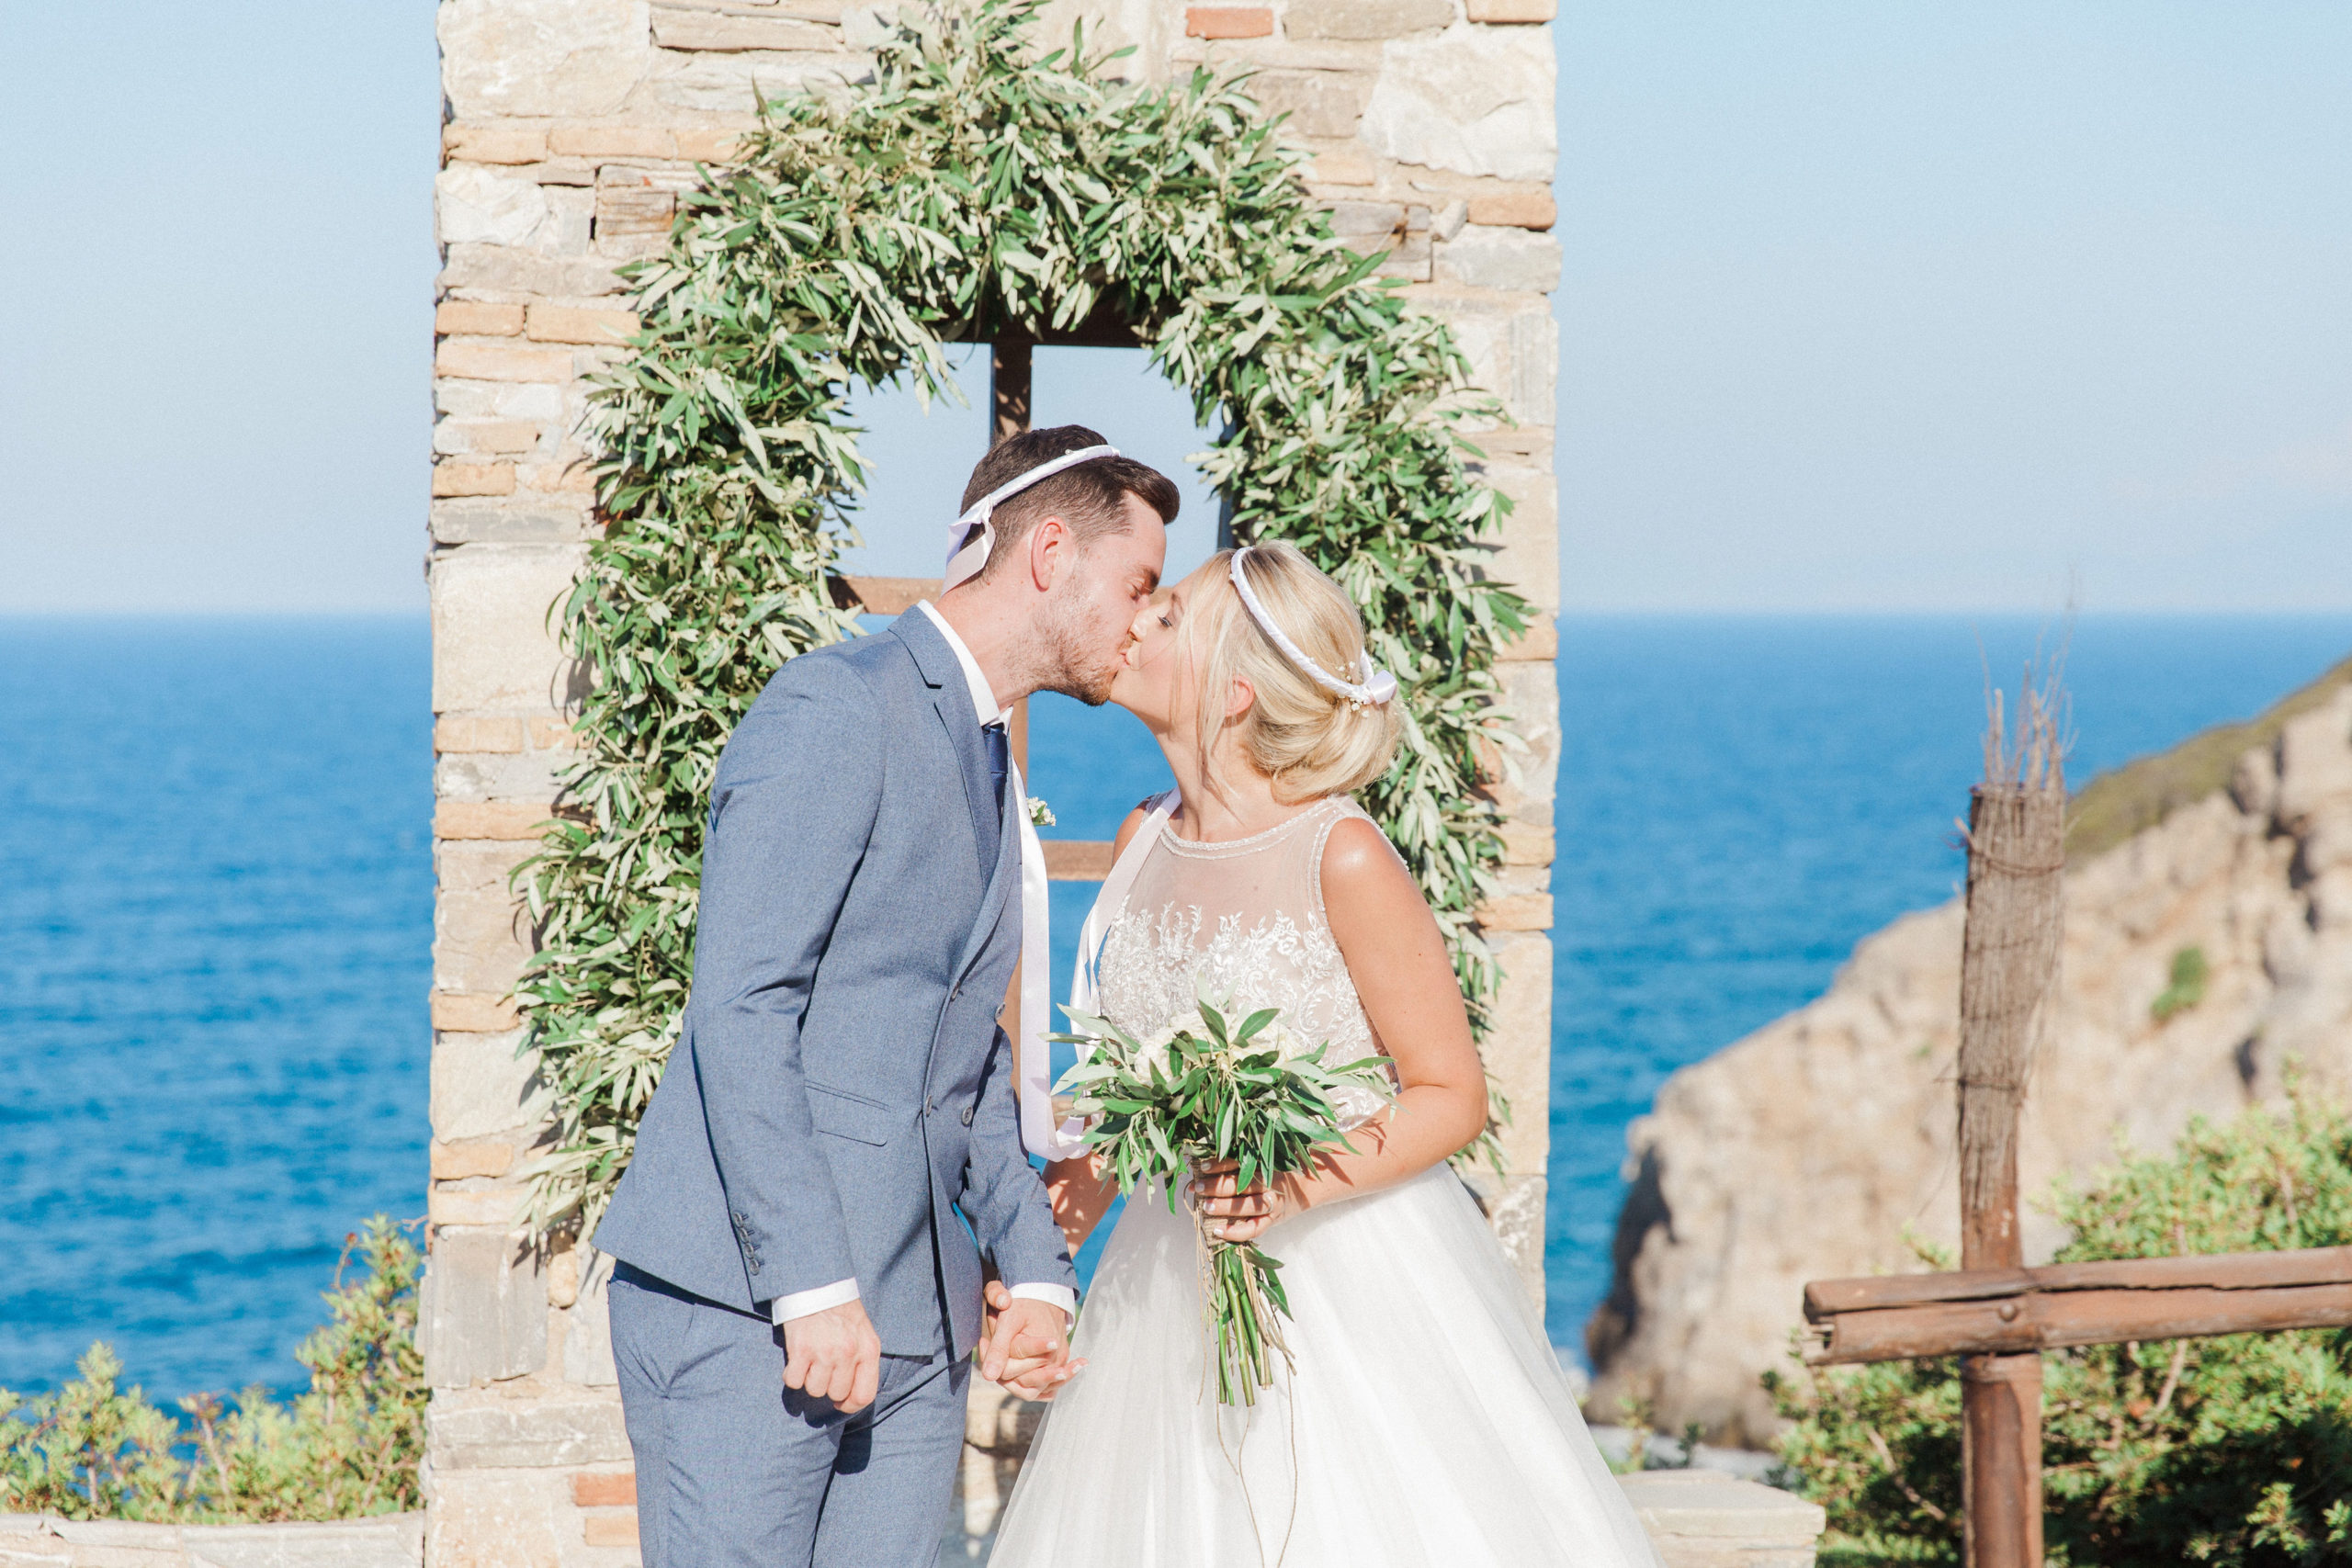 The couples first kiss at the end of their celebrant led wedding ceremony at Villa Delenia in Evia Greece. The couple are wearing Greek wedding crowns.